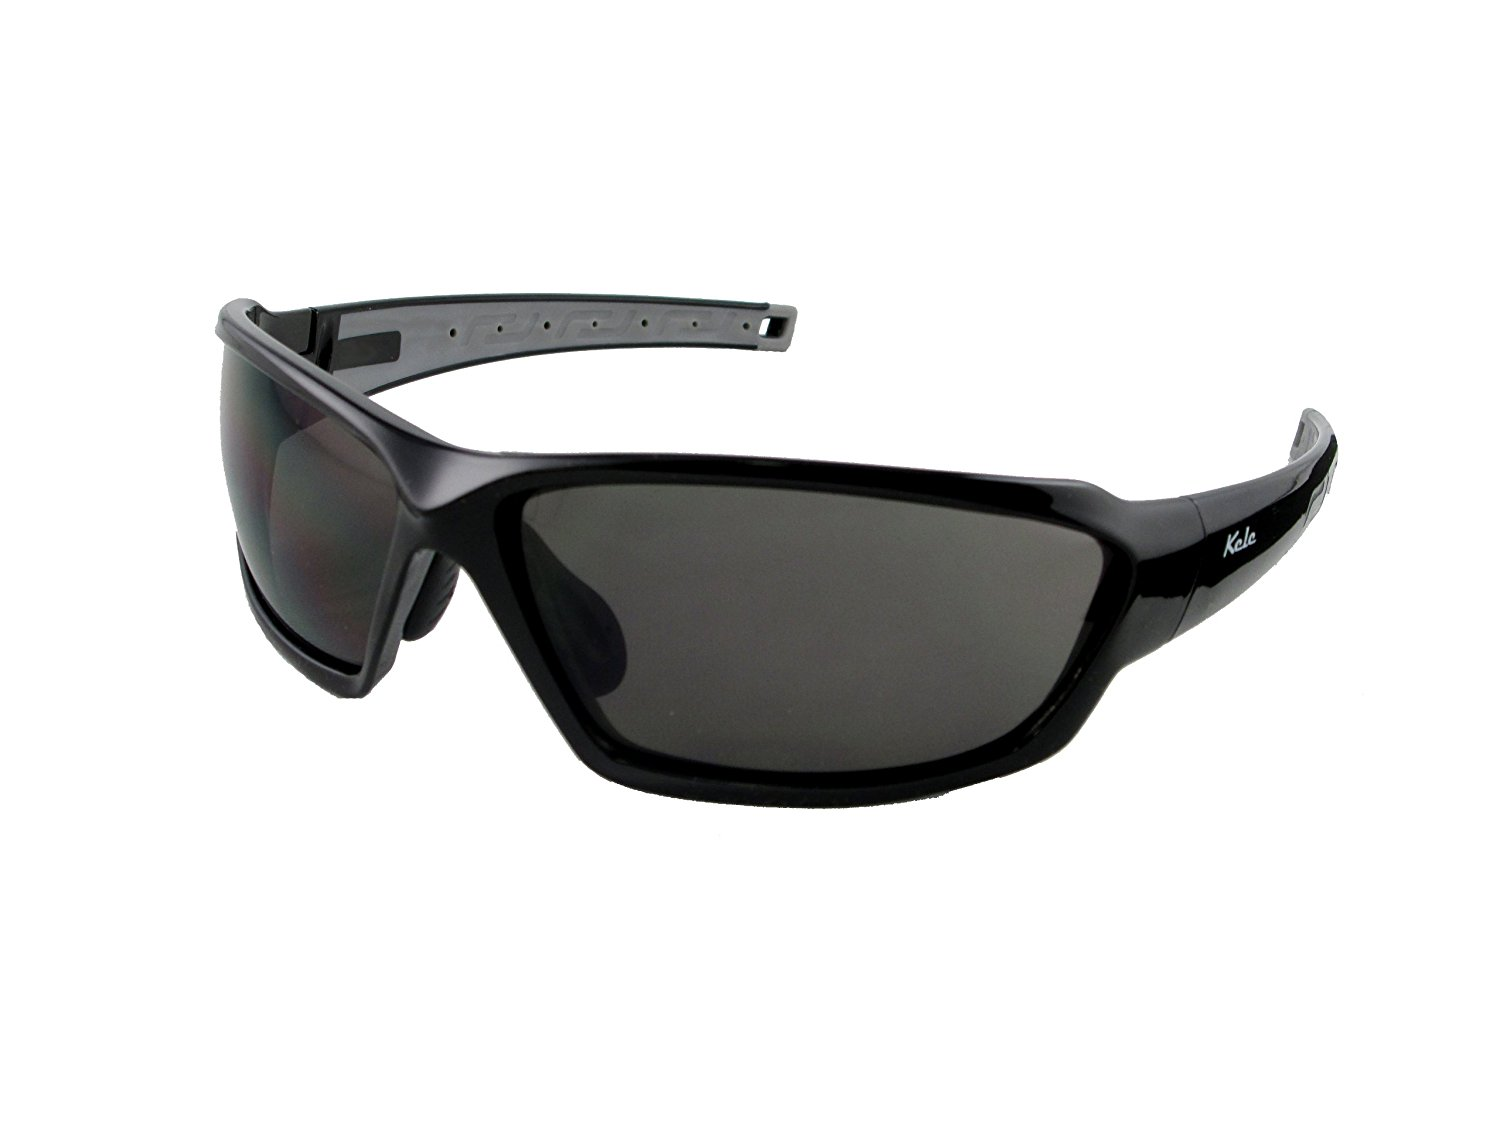 c3297bf1011 Get Quotations · Kele by NYX G4 Sunglasses